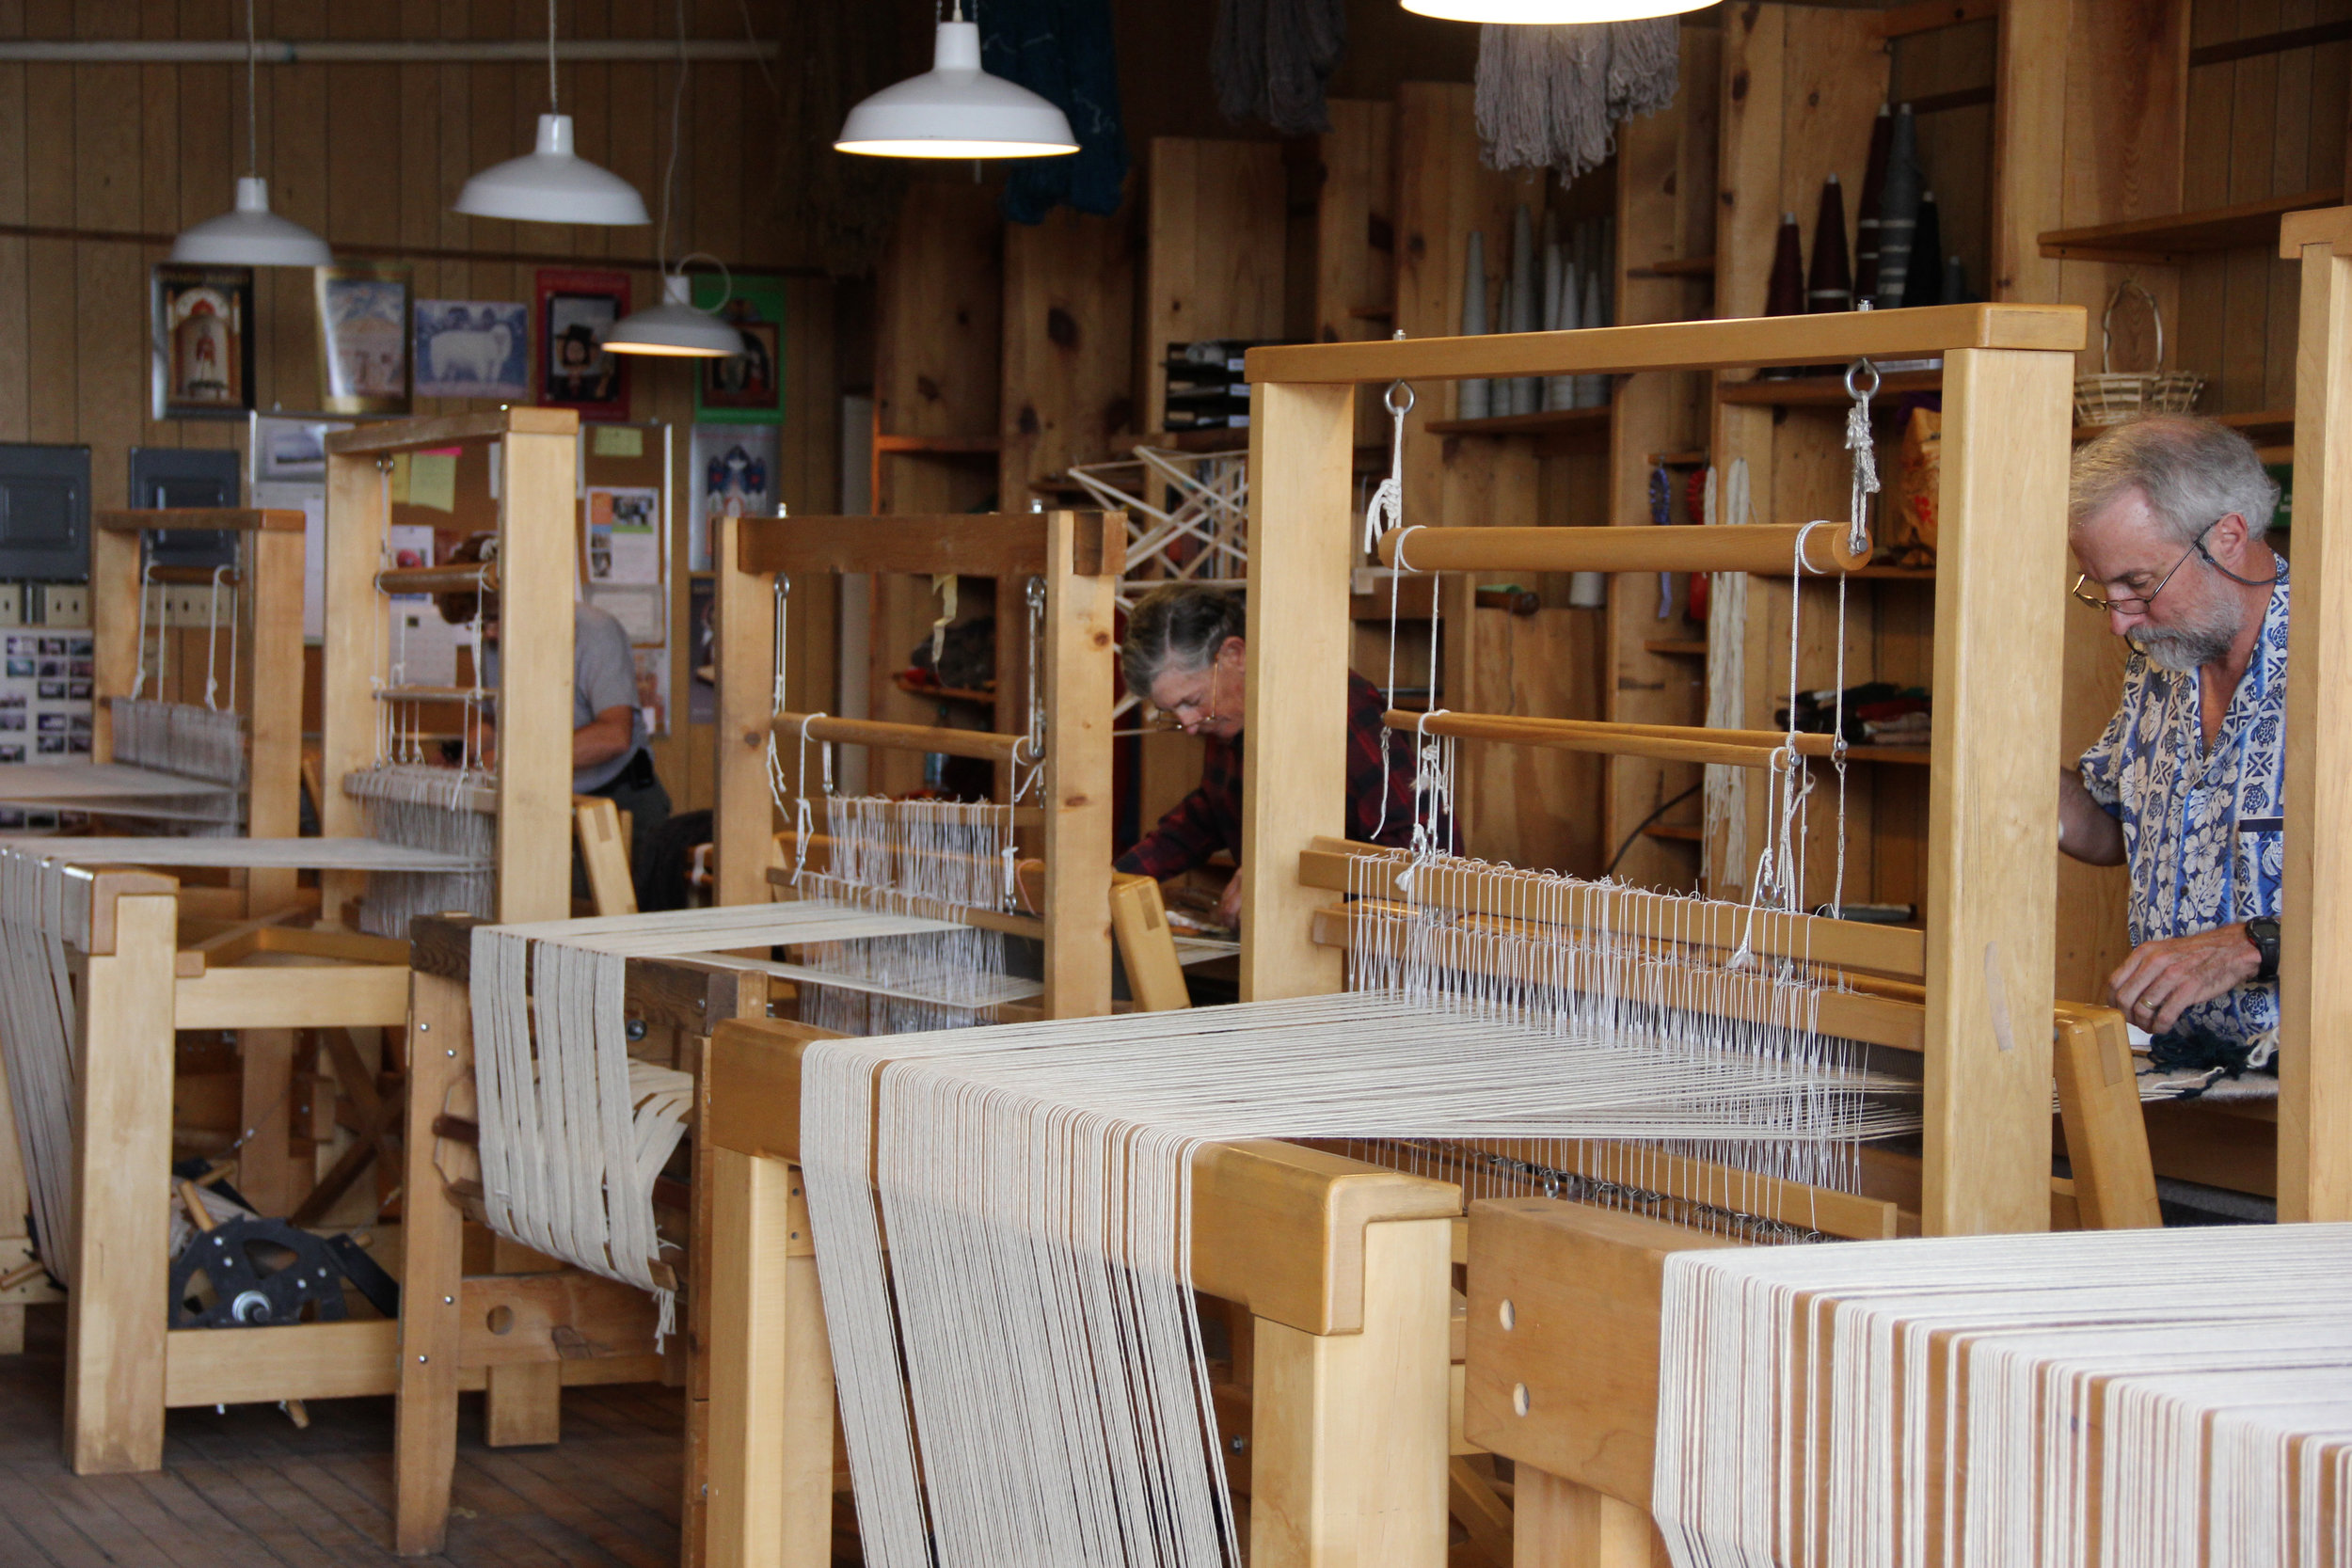 L-R: Molly, Toni, and a weaving student on the Tierra Wools looms